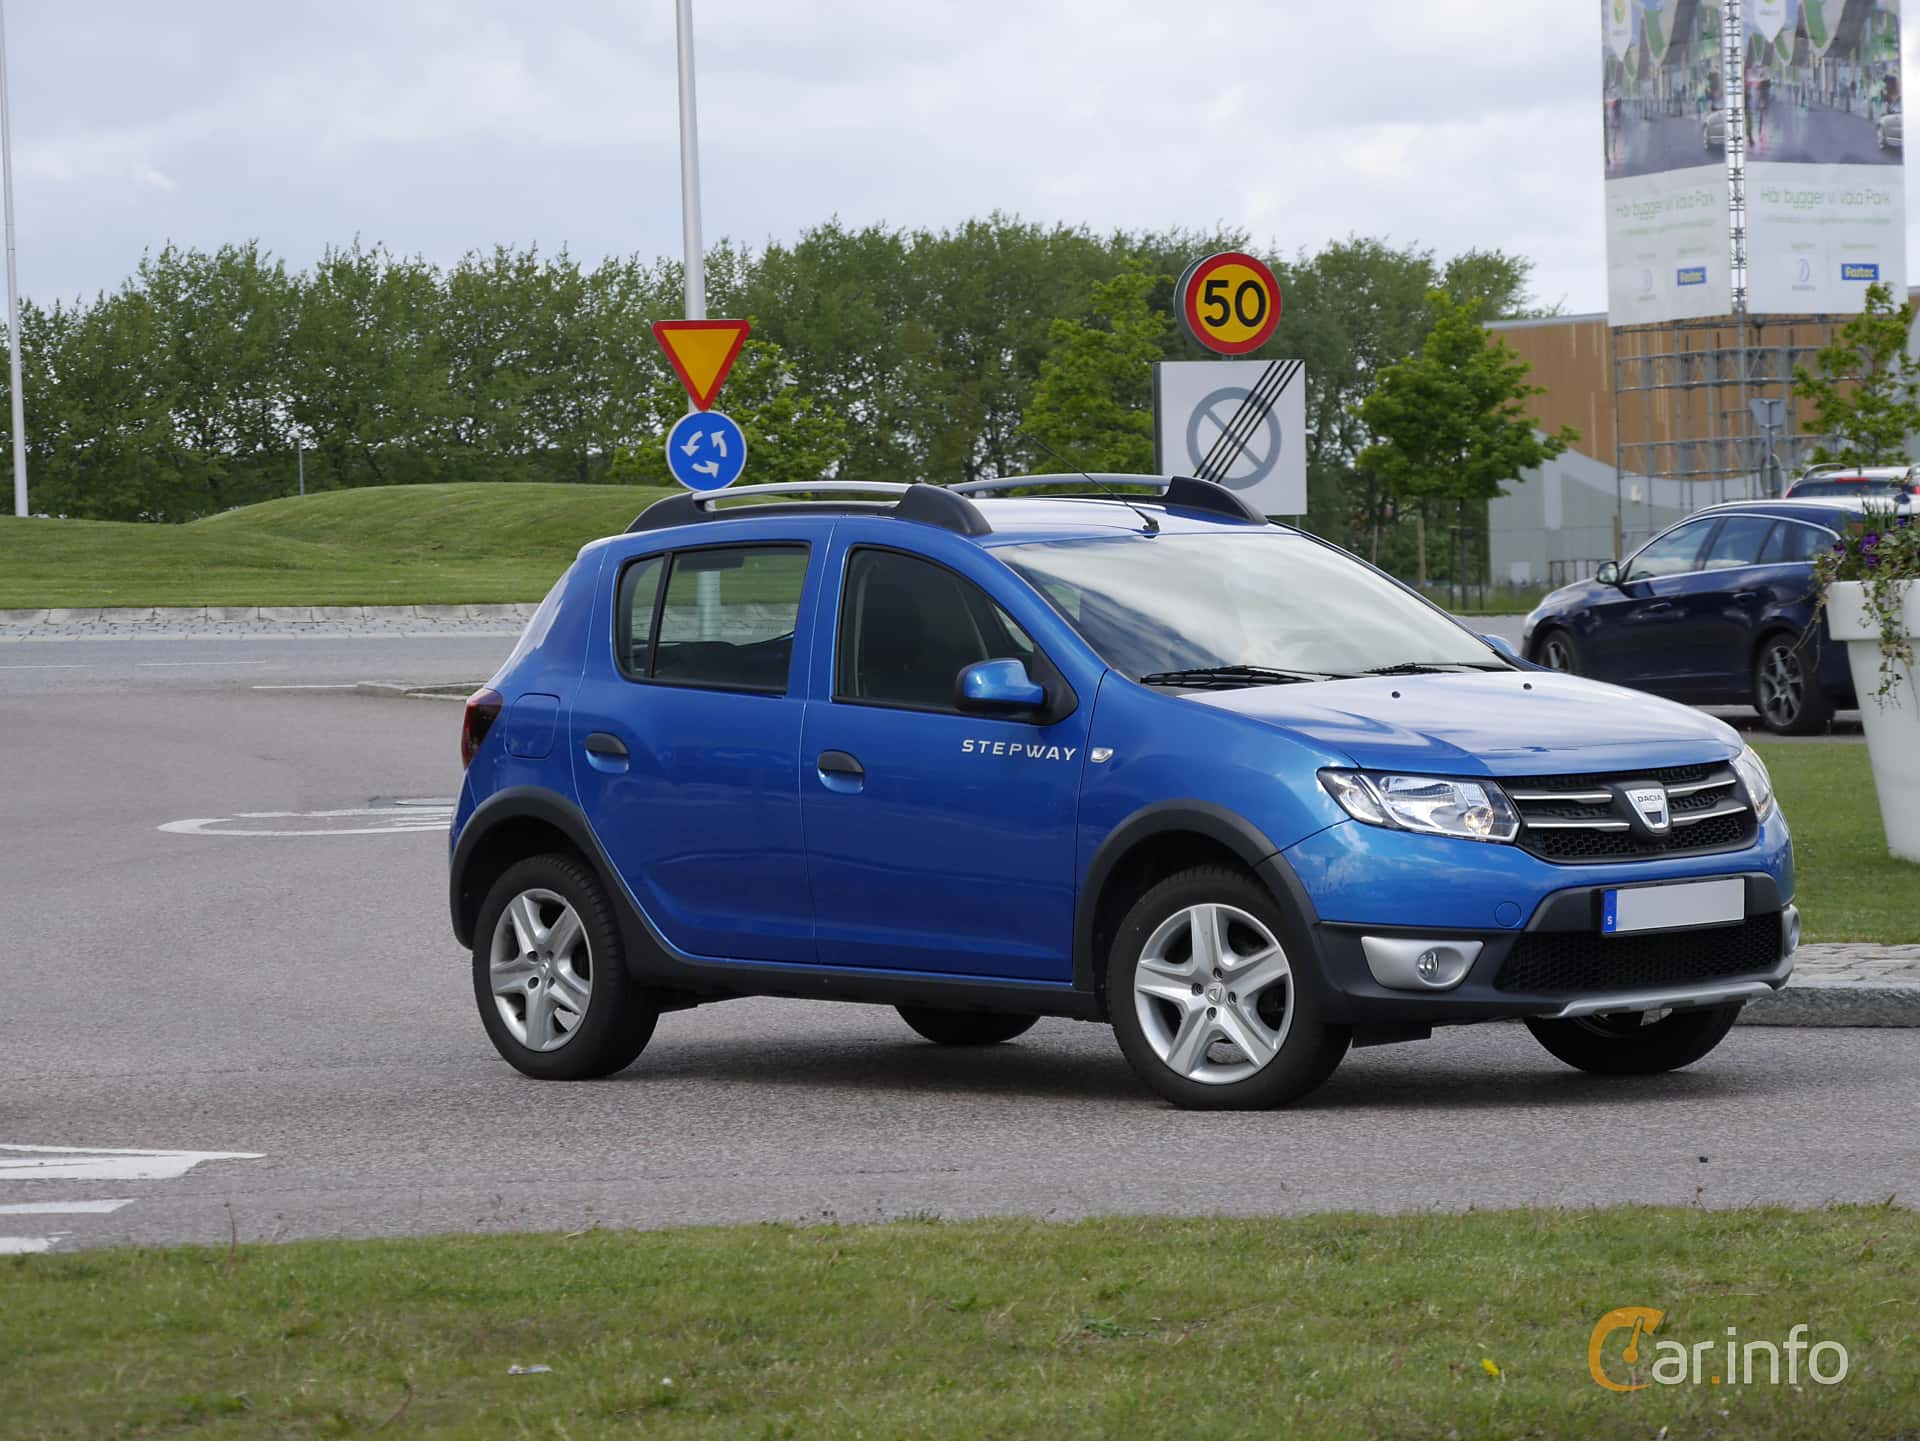 dacia sandero stepway 1 5 dci manual 90hp 2017. Black Bedroom Furniture Sets. Home Design Ideas